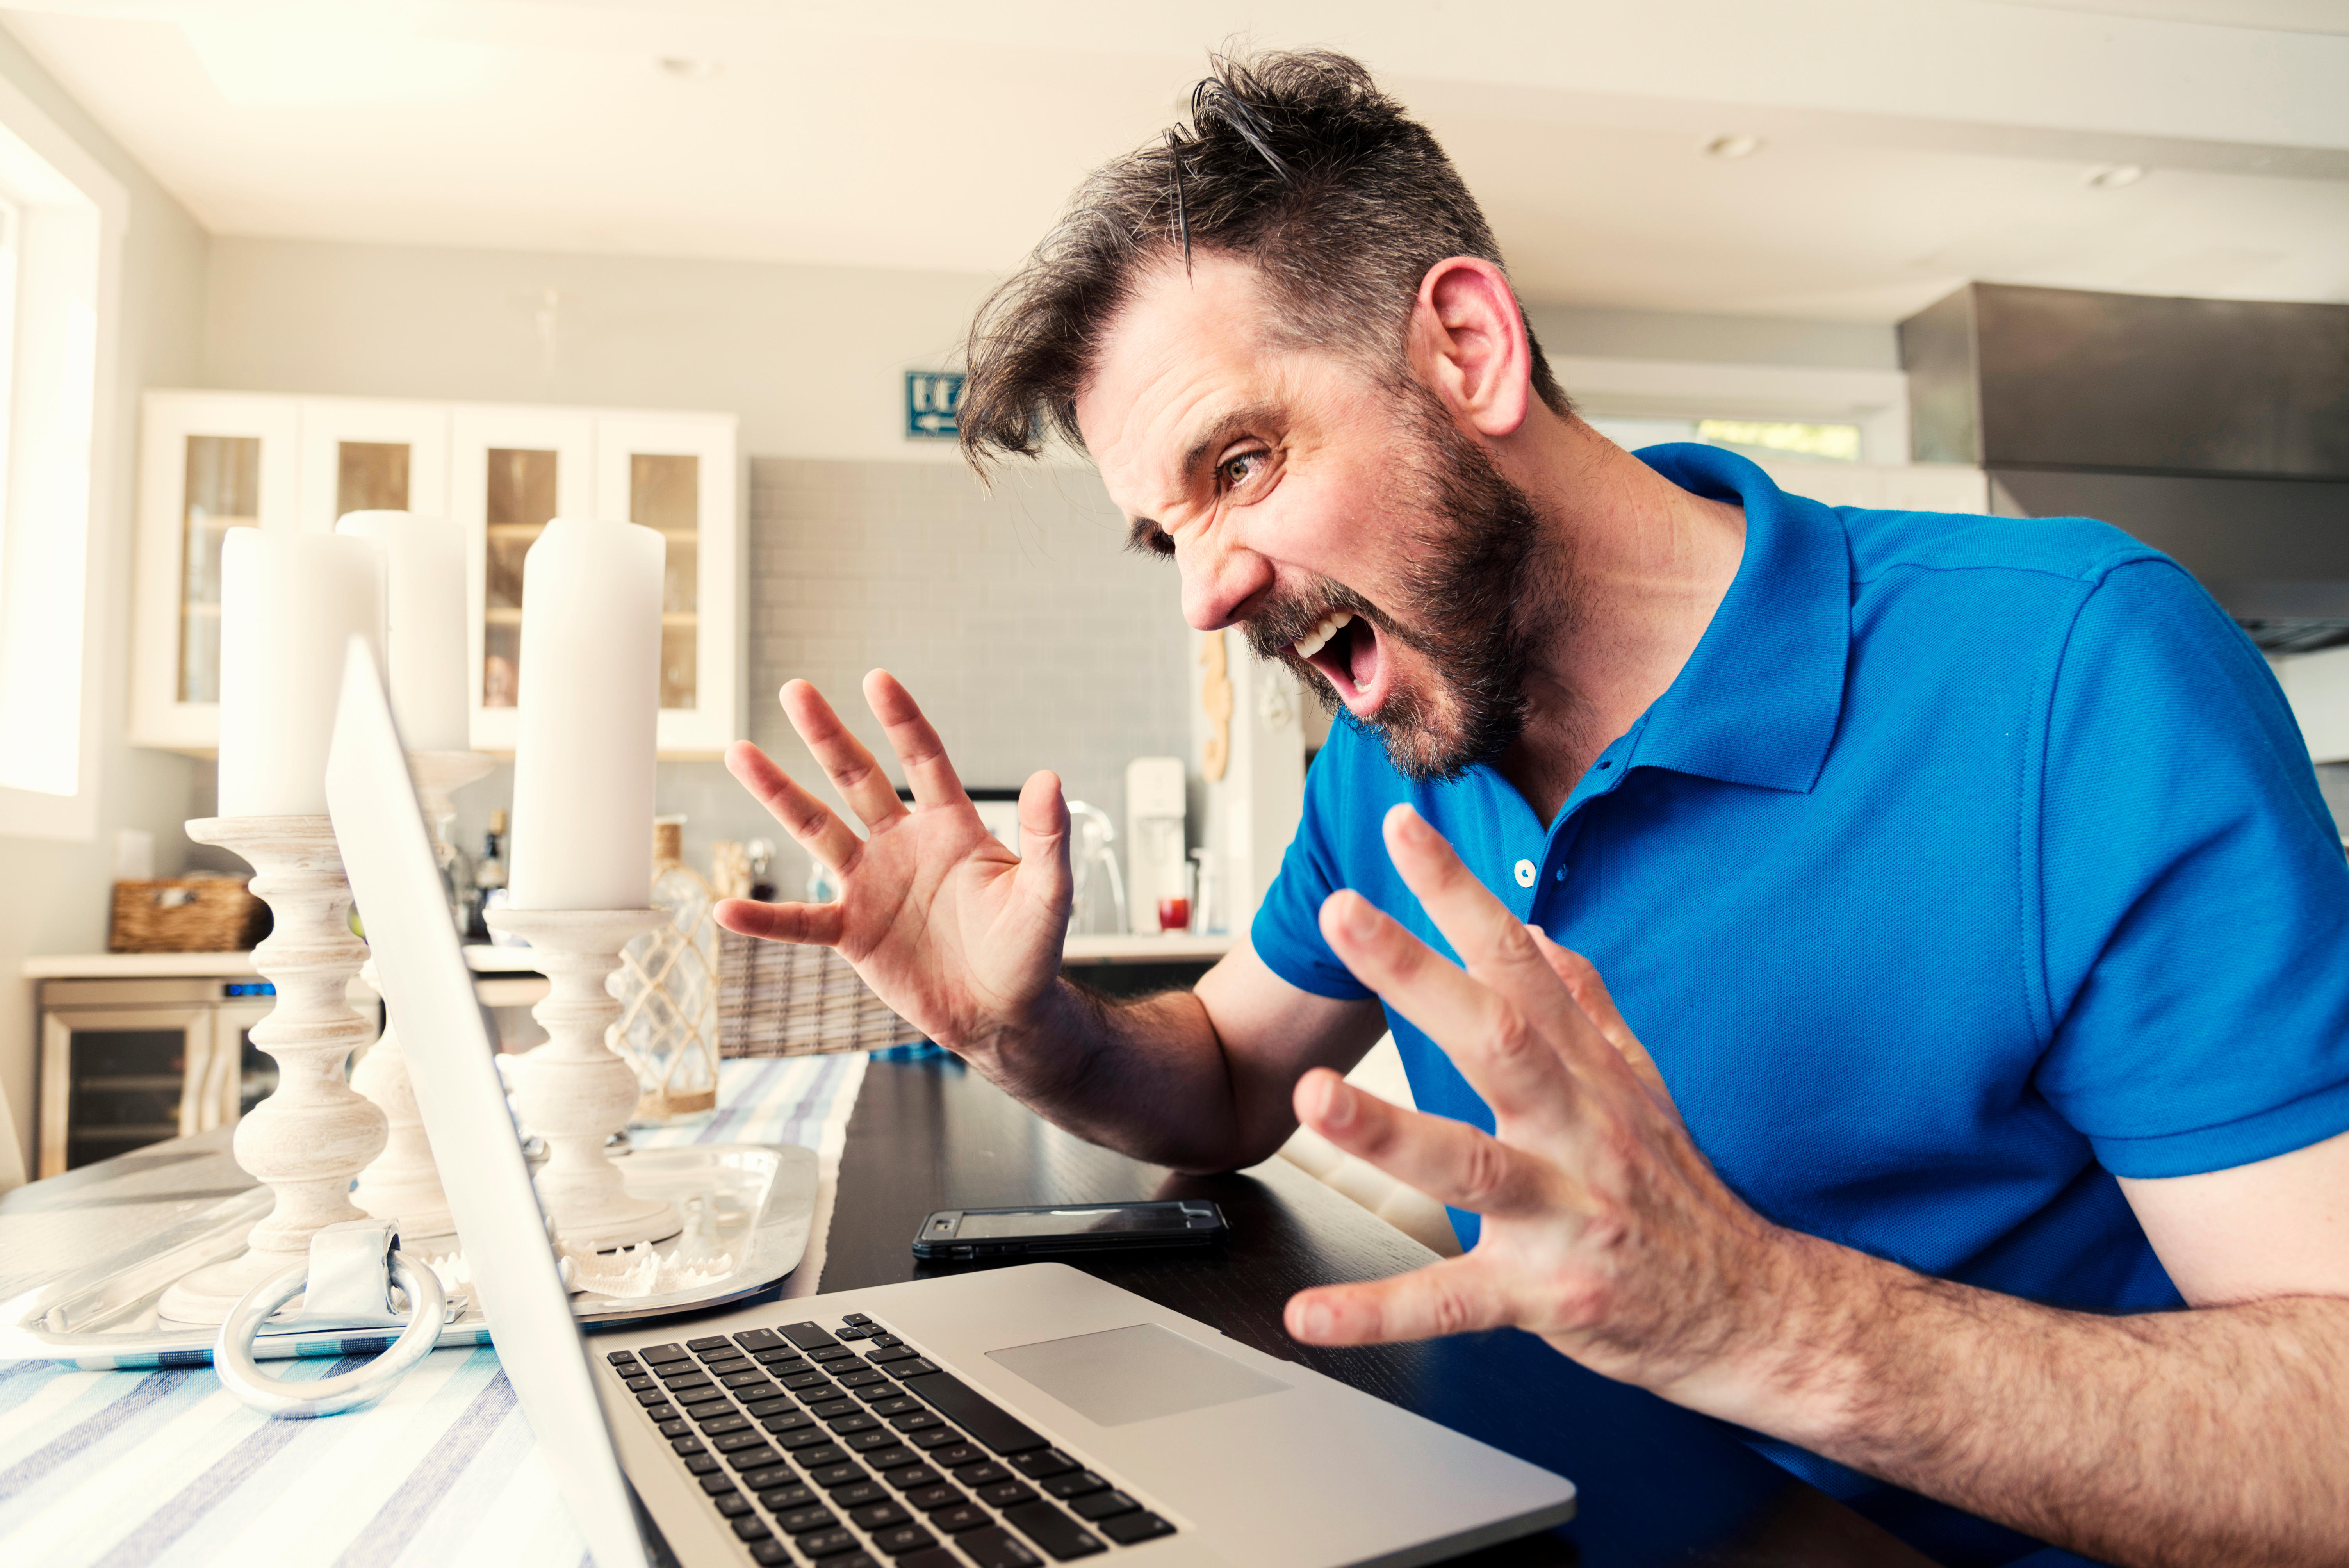 Frustrated Young Man Screaming While Using Laptop